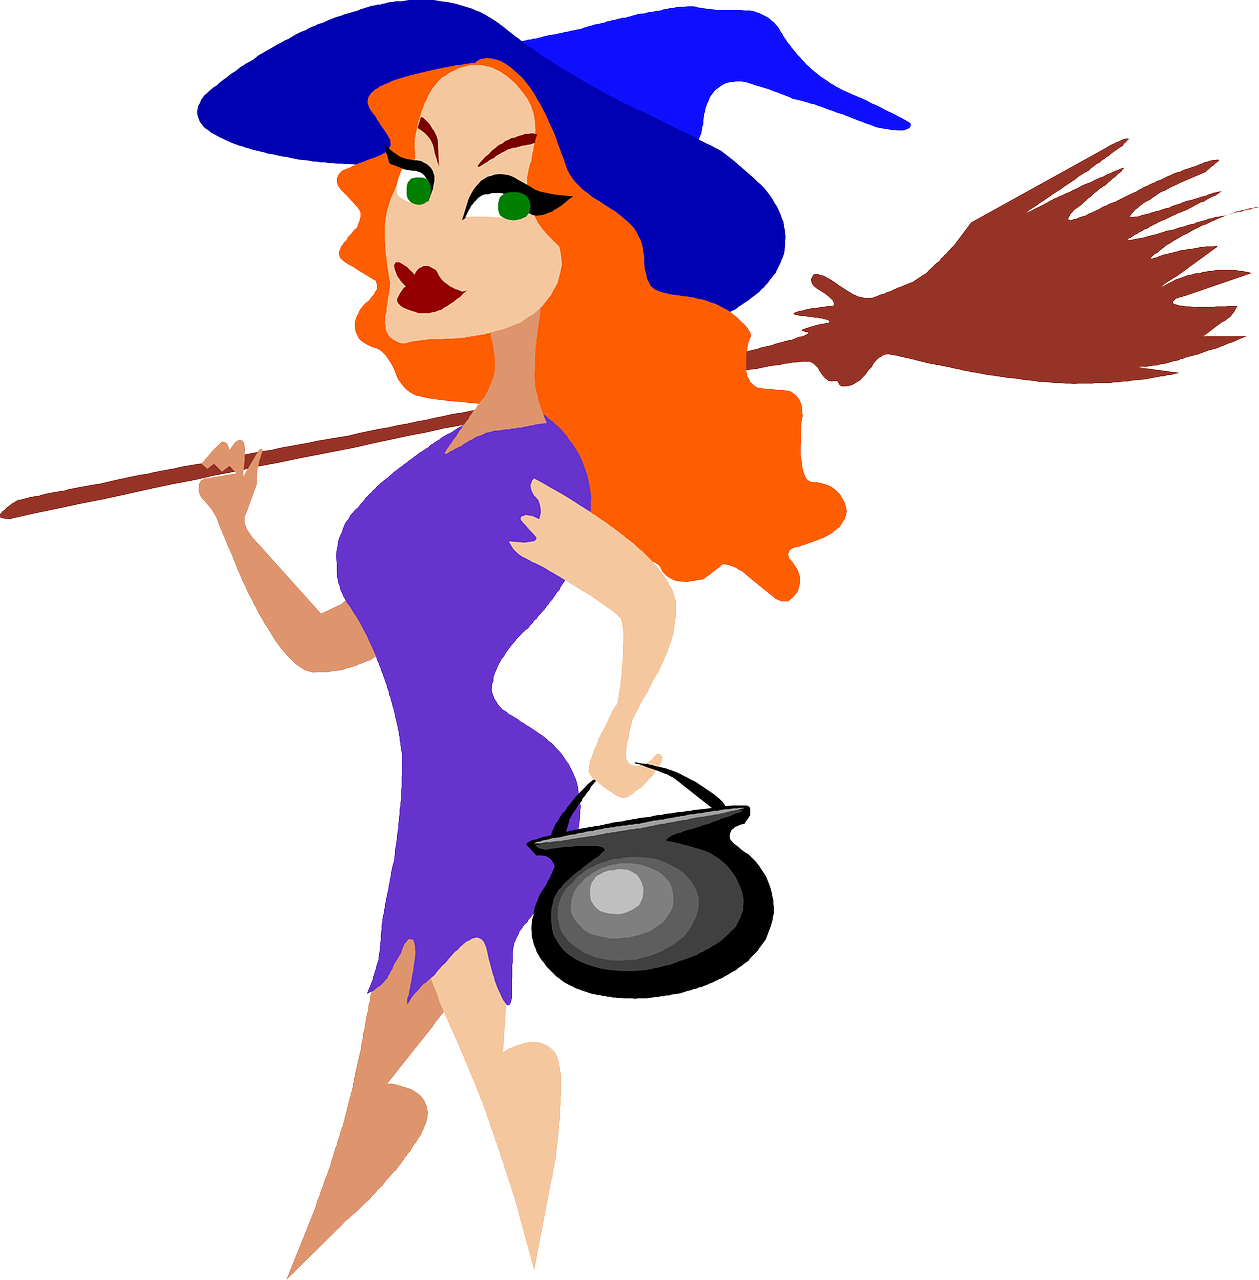 Pin by Udash on People Cartoon witch, Halloween logo